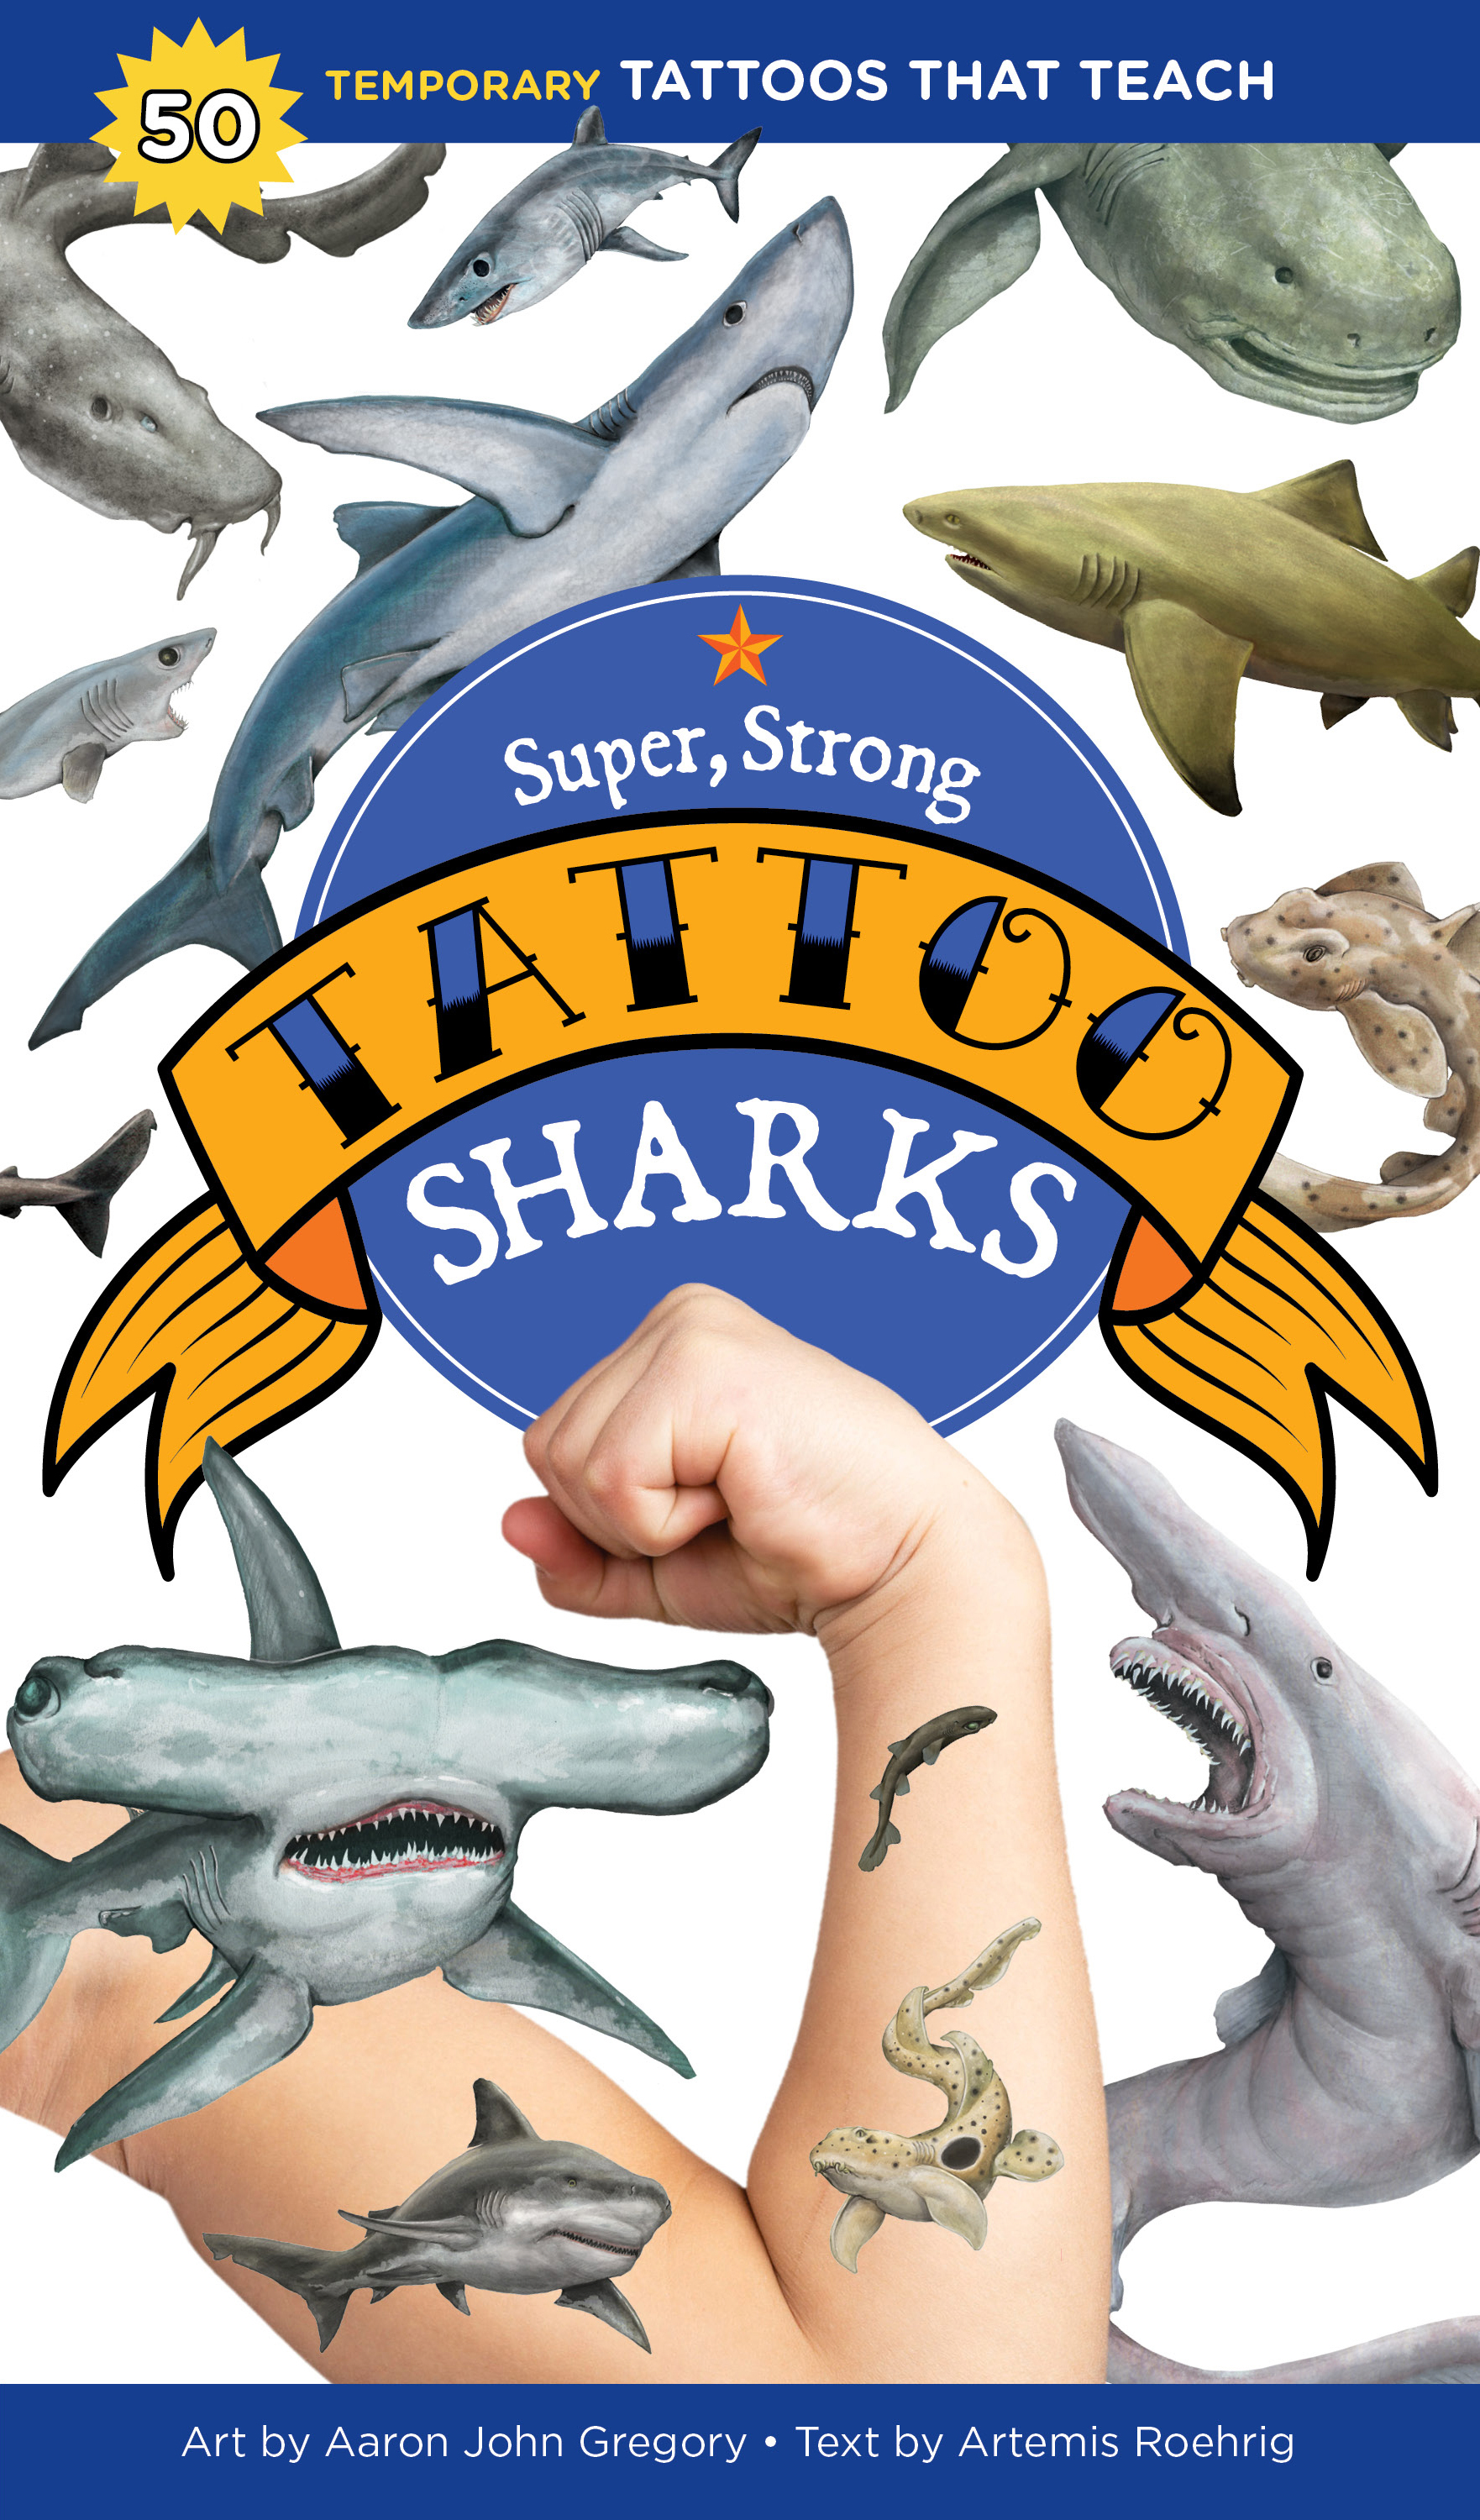 Super, Strong Tattoo Sharks 50 Temporary Tattoos That Teach - Aaron John Gregory